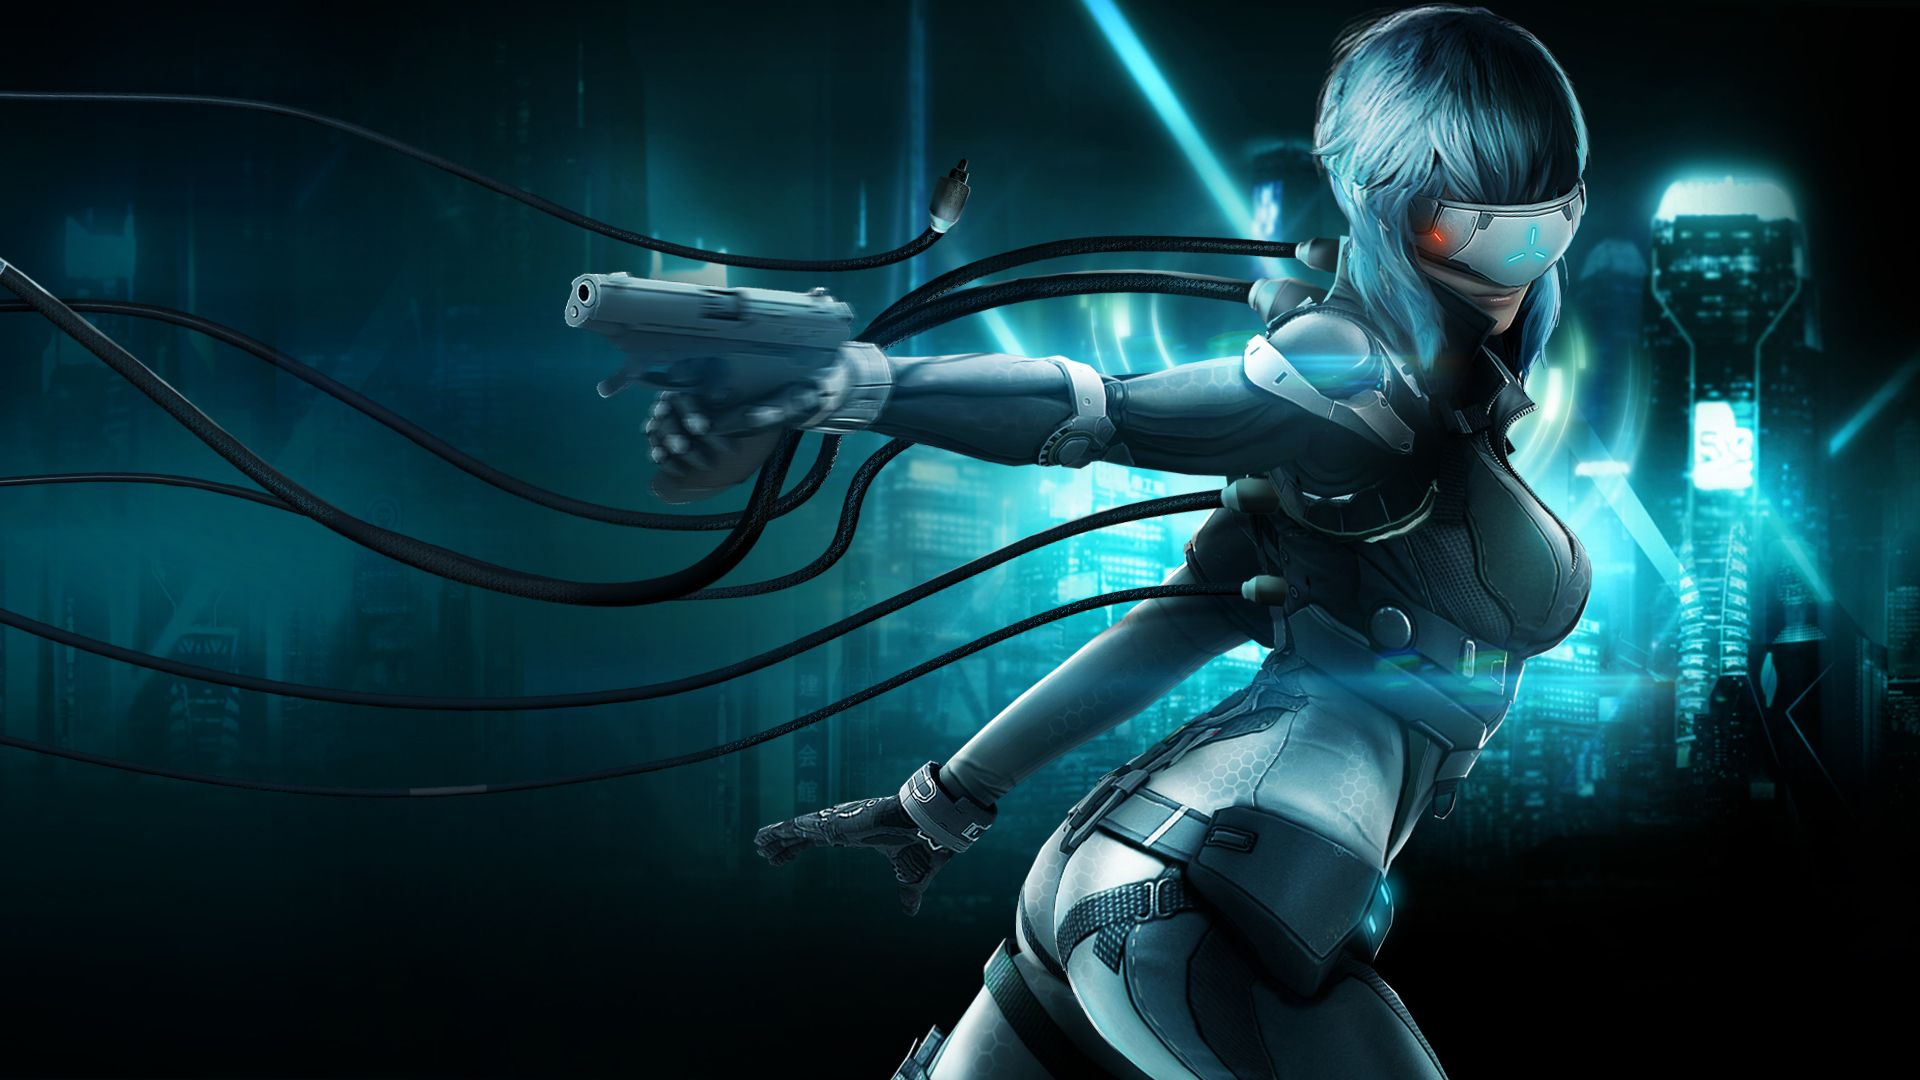 Anime Ghost In The Shell Wallpaper 2017 53465 Wallpaper